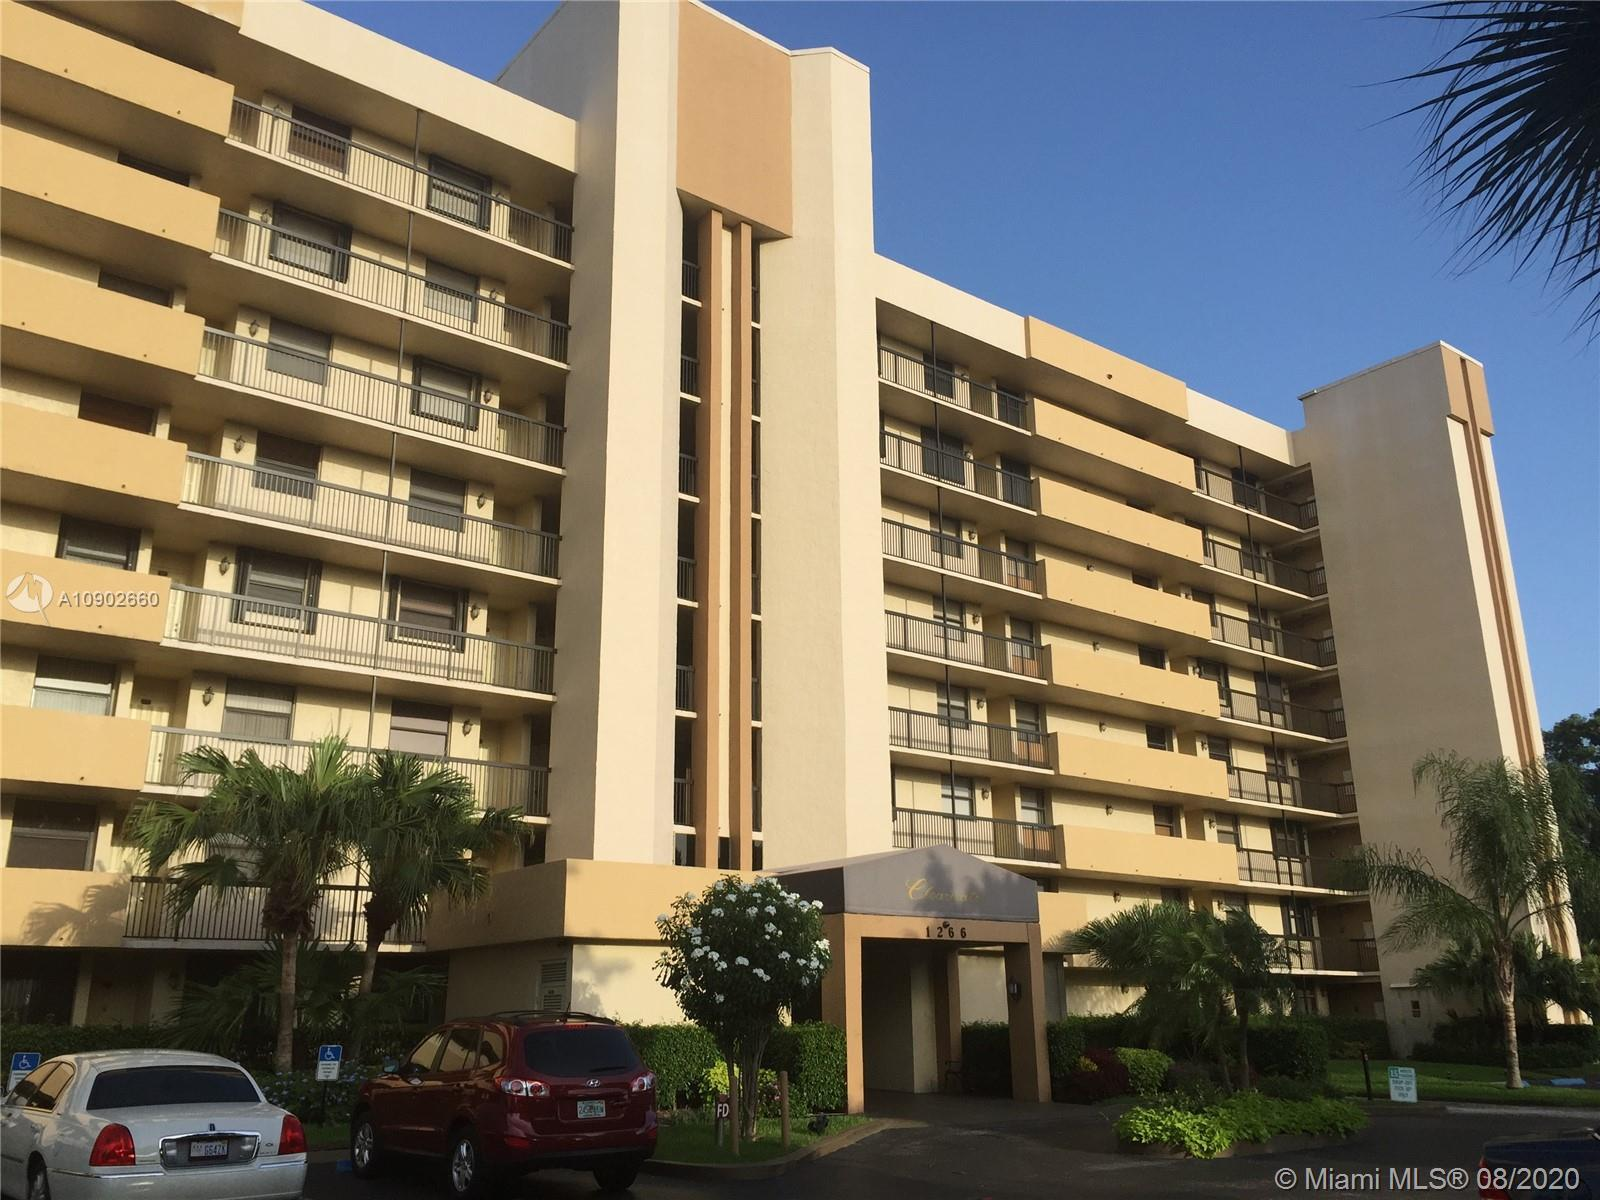 Corner unit partially renovated located on the 7th floor. This spacious 2BD/2BA + Den with 1300 sqft